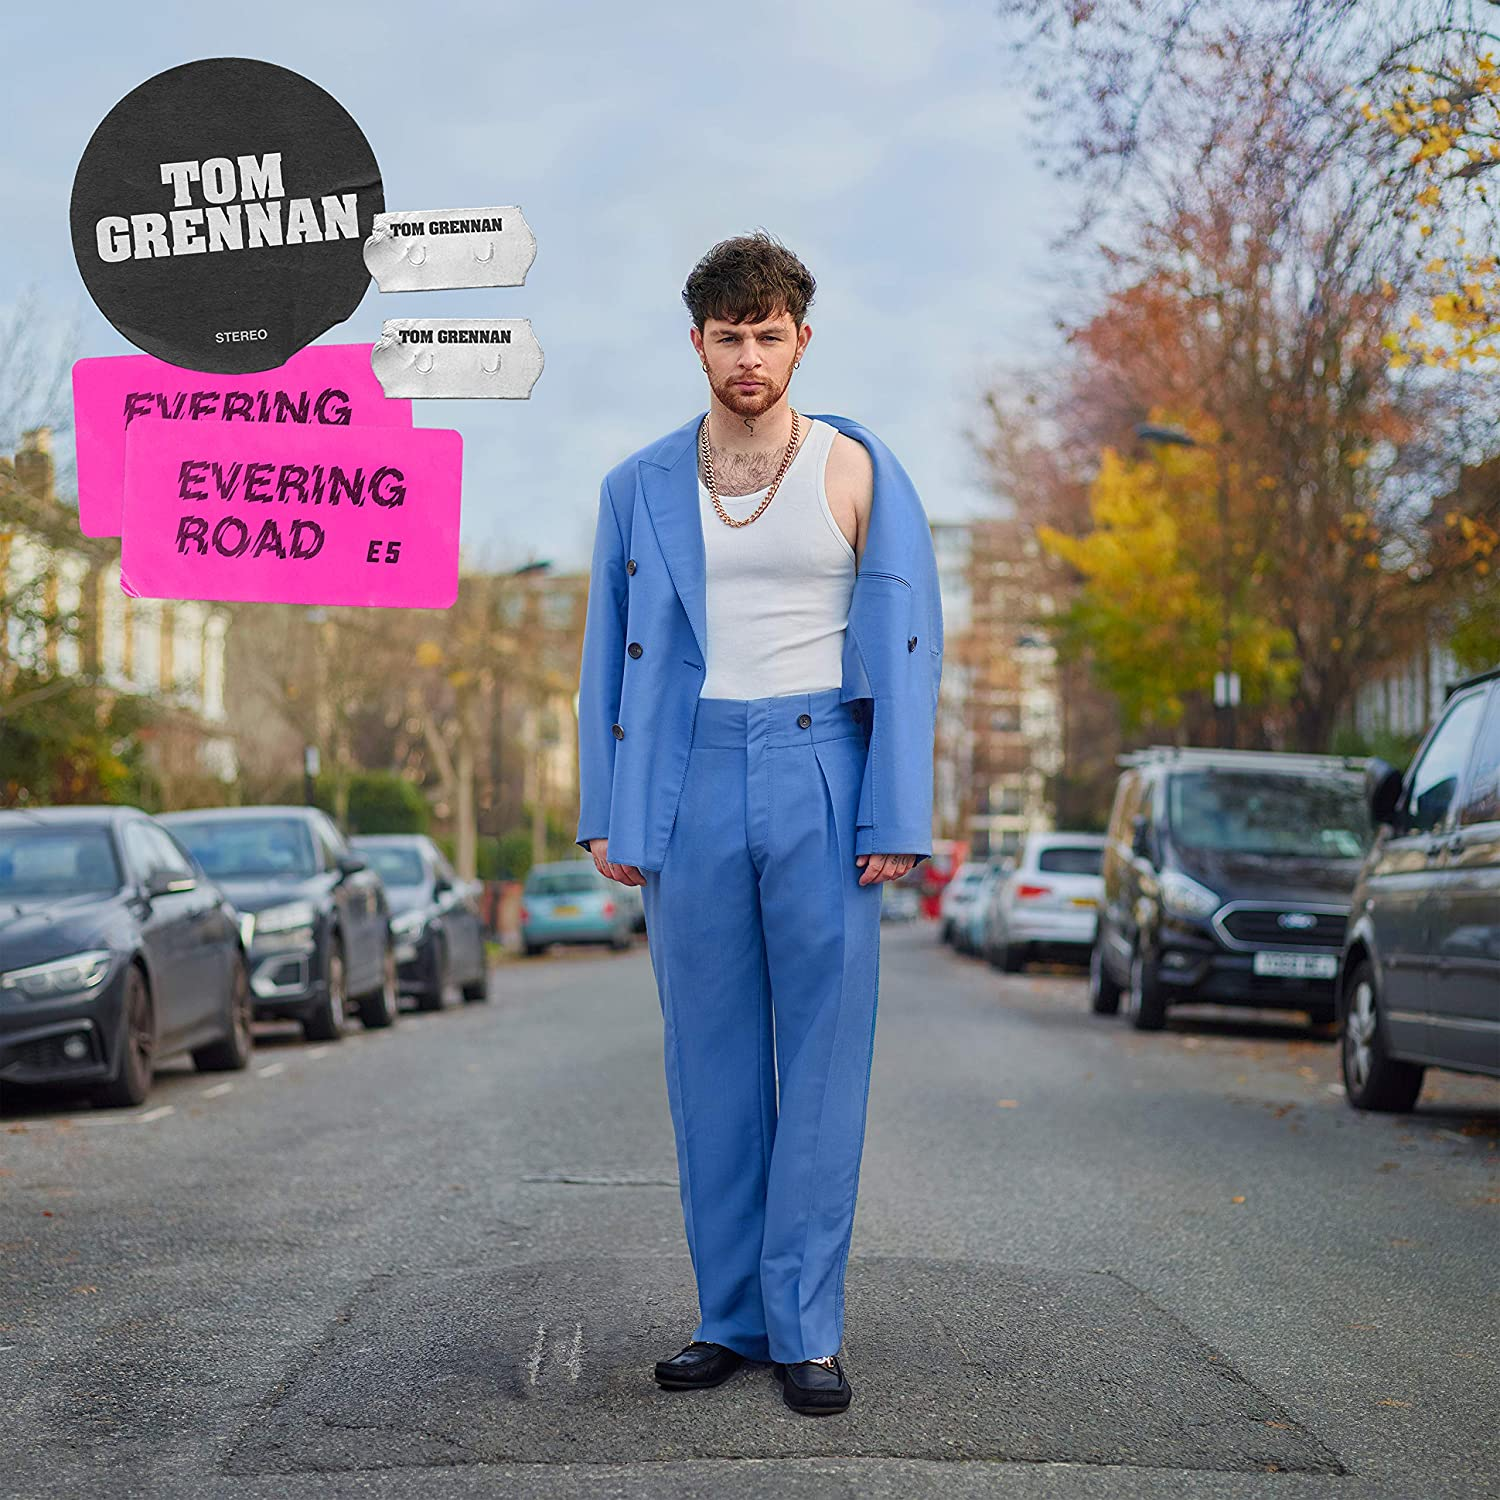 Tom Grennan - Evering Road